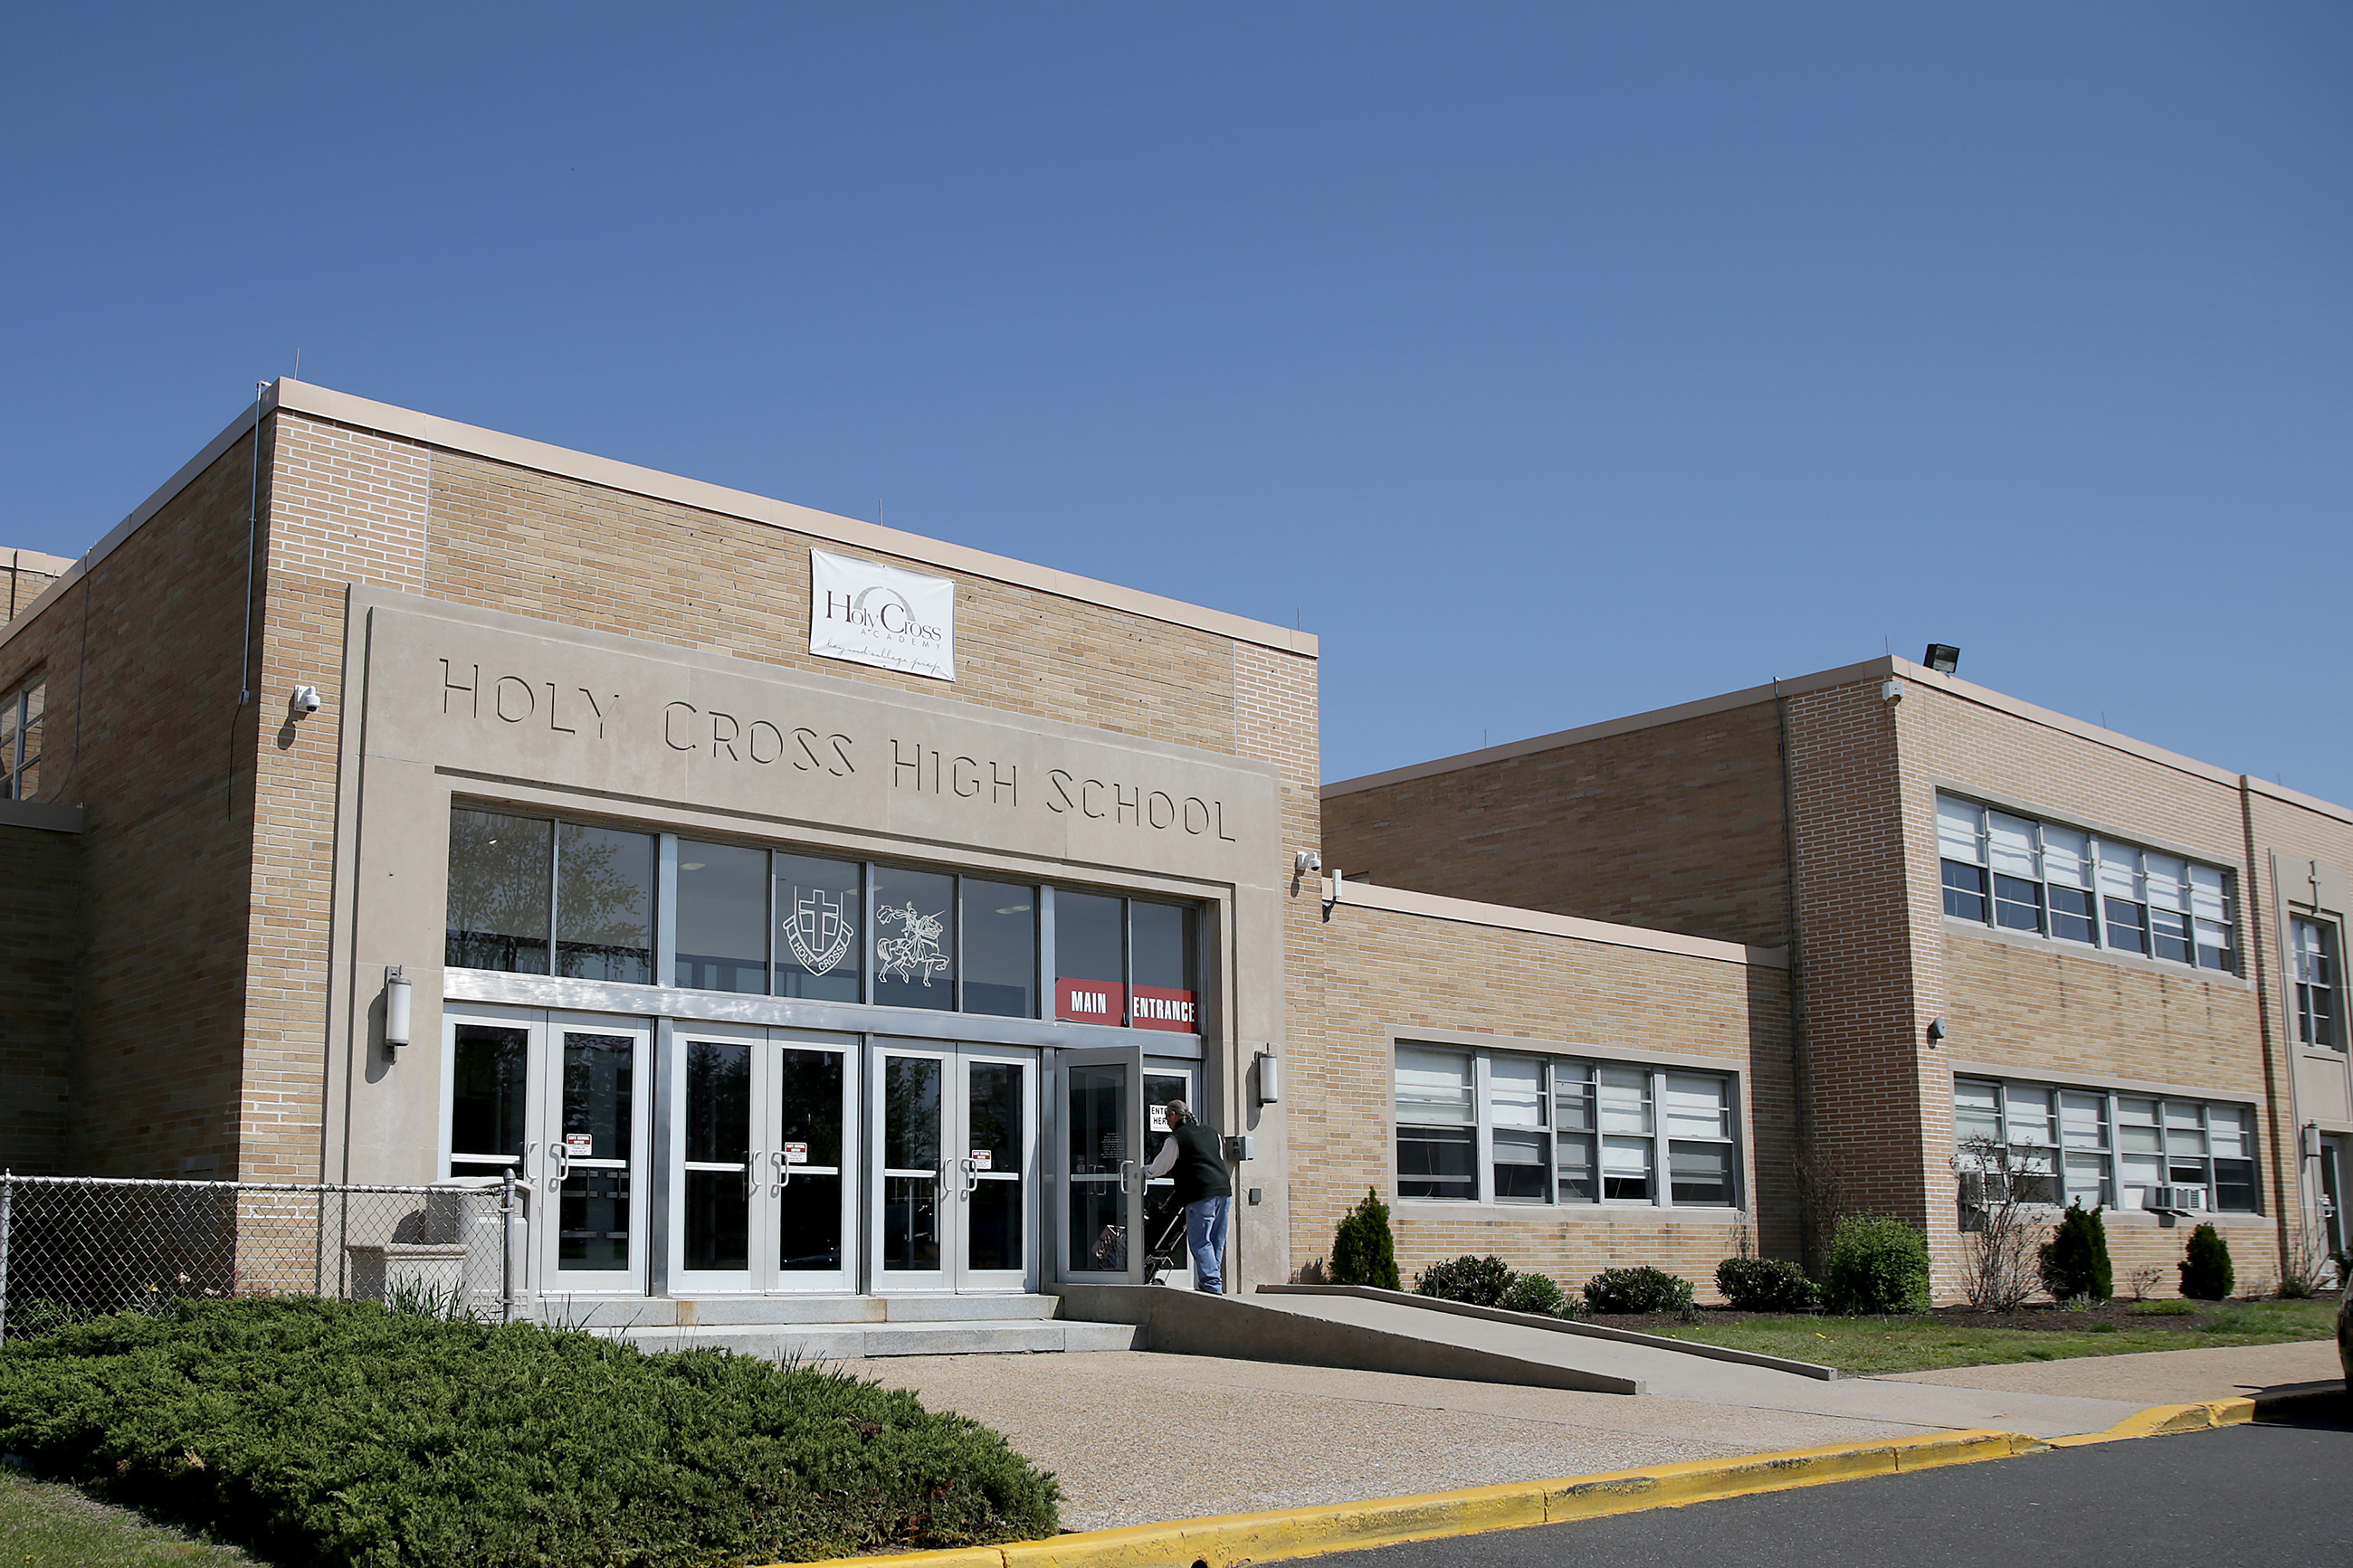 An exterior view of Holy Cross Academy in Delran, NJ.